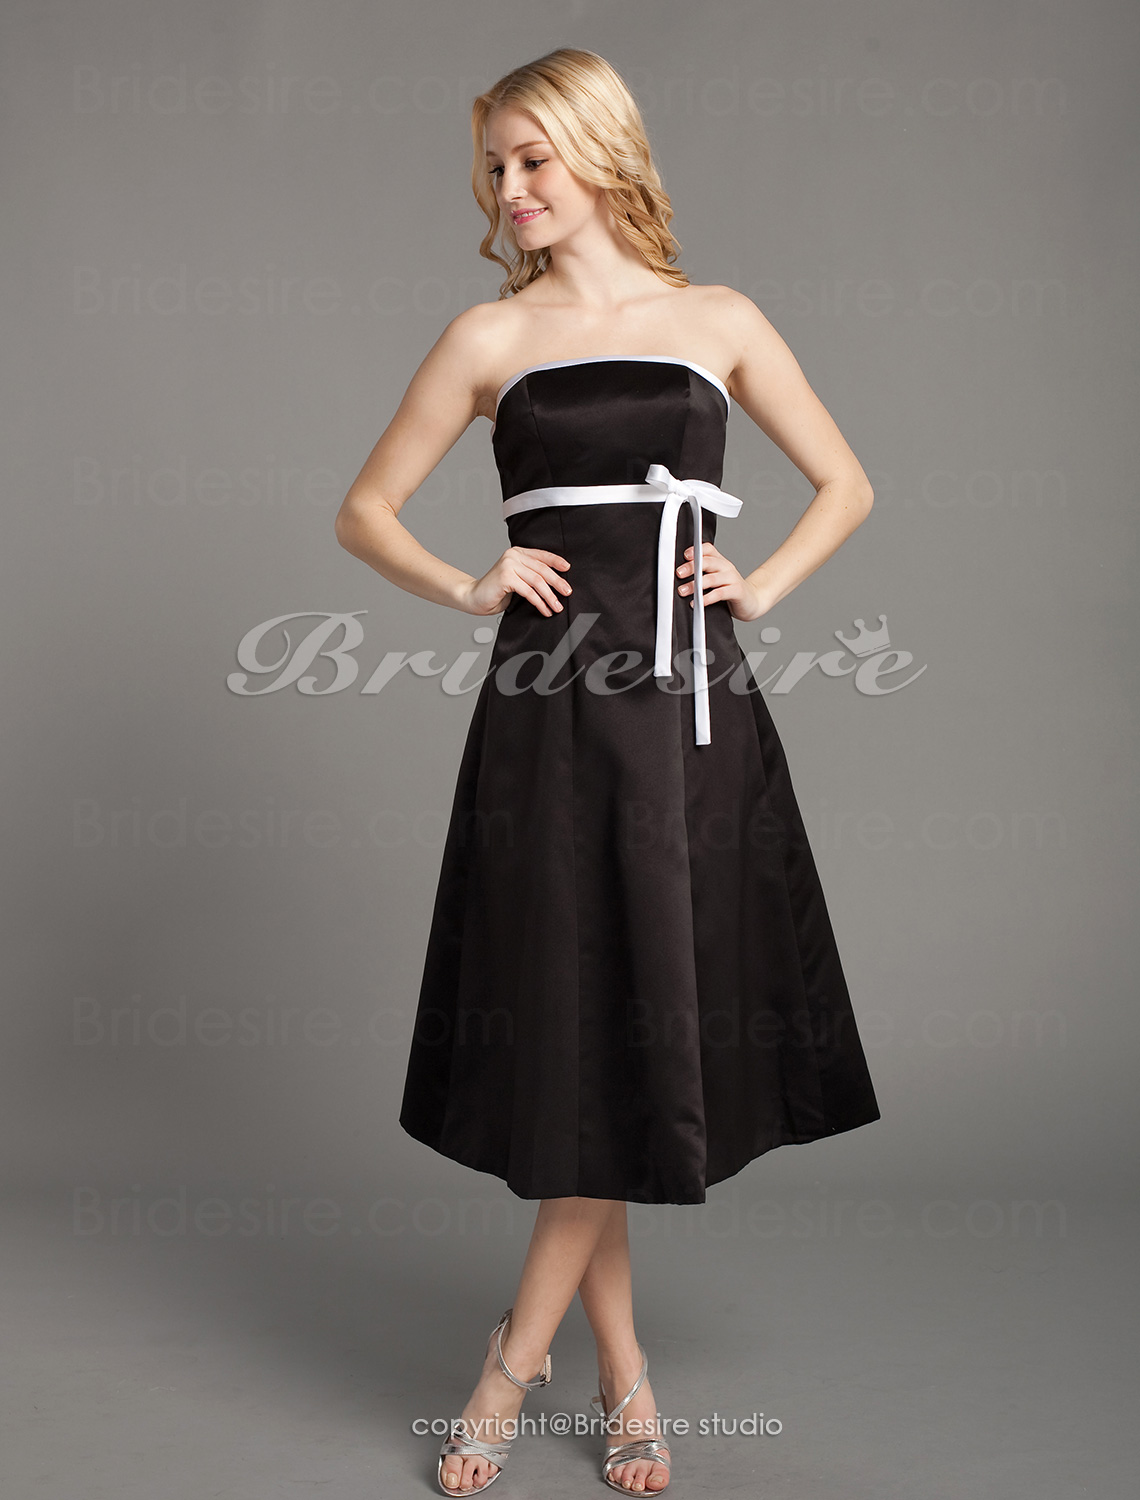 A-line Satin Knee-length Strapless Bridesmaid Dress